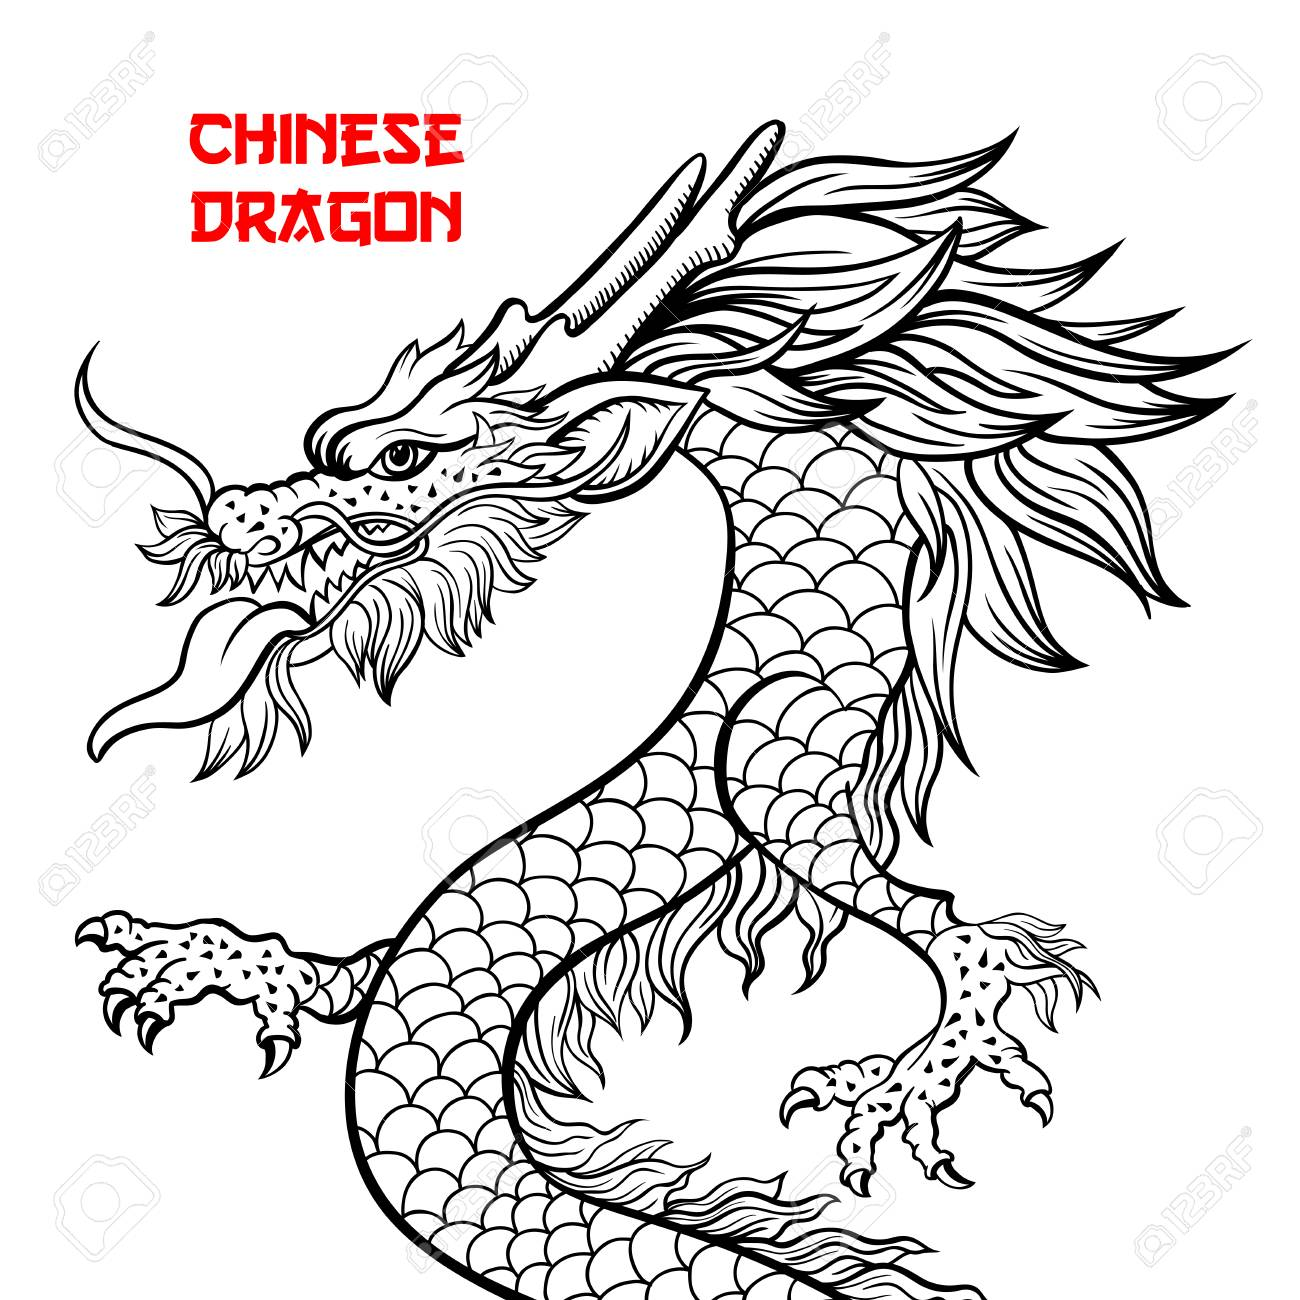 Chinese dragon hand drawn vector illustration. Mythical creature...